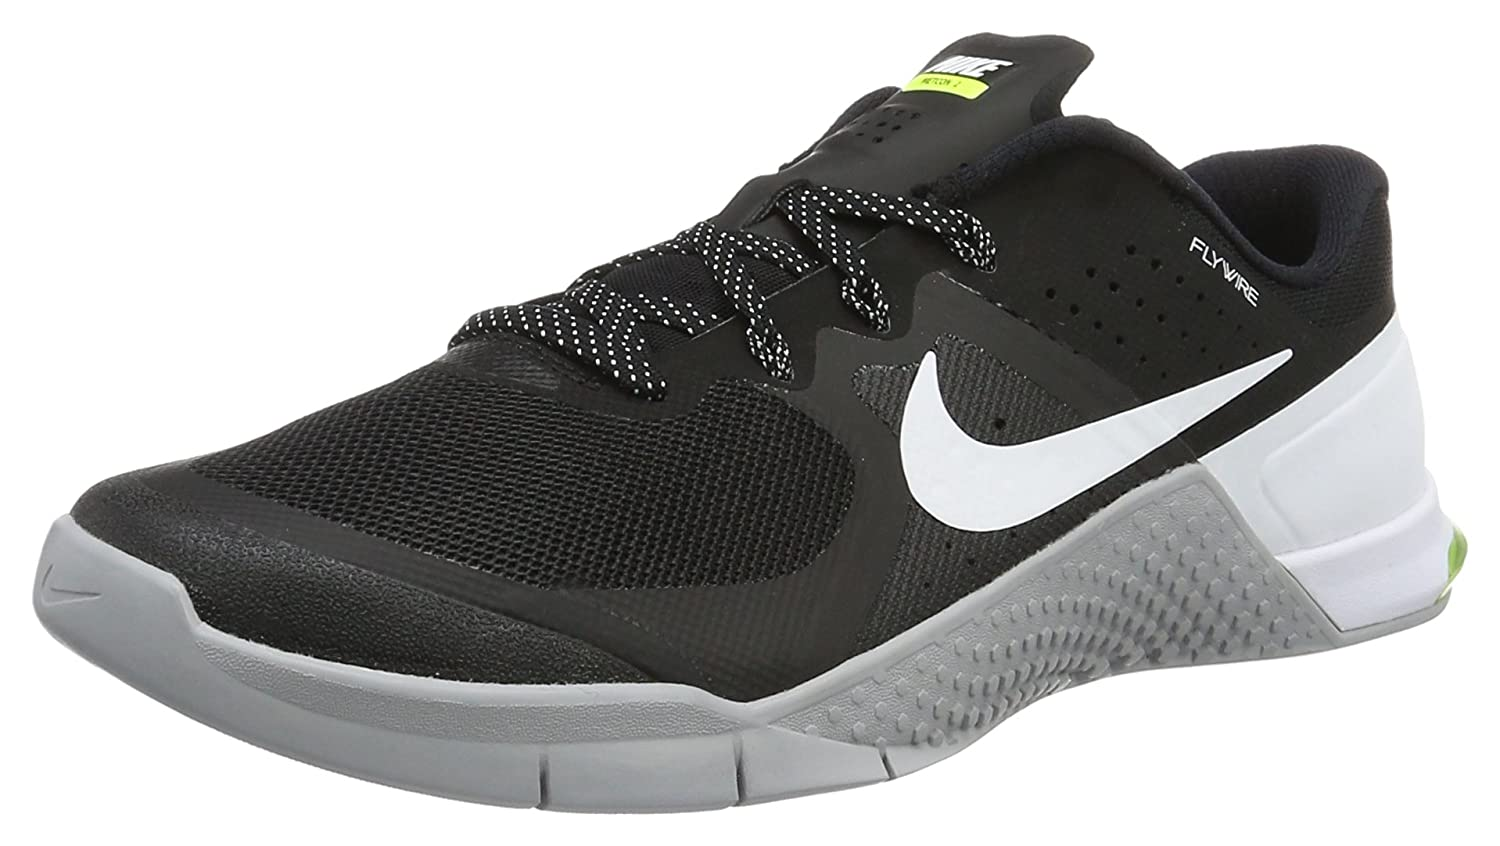 Nike Metcon Cross Training Shoes Image 1